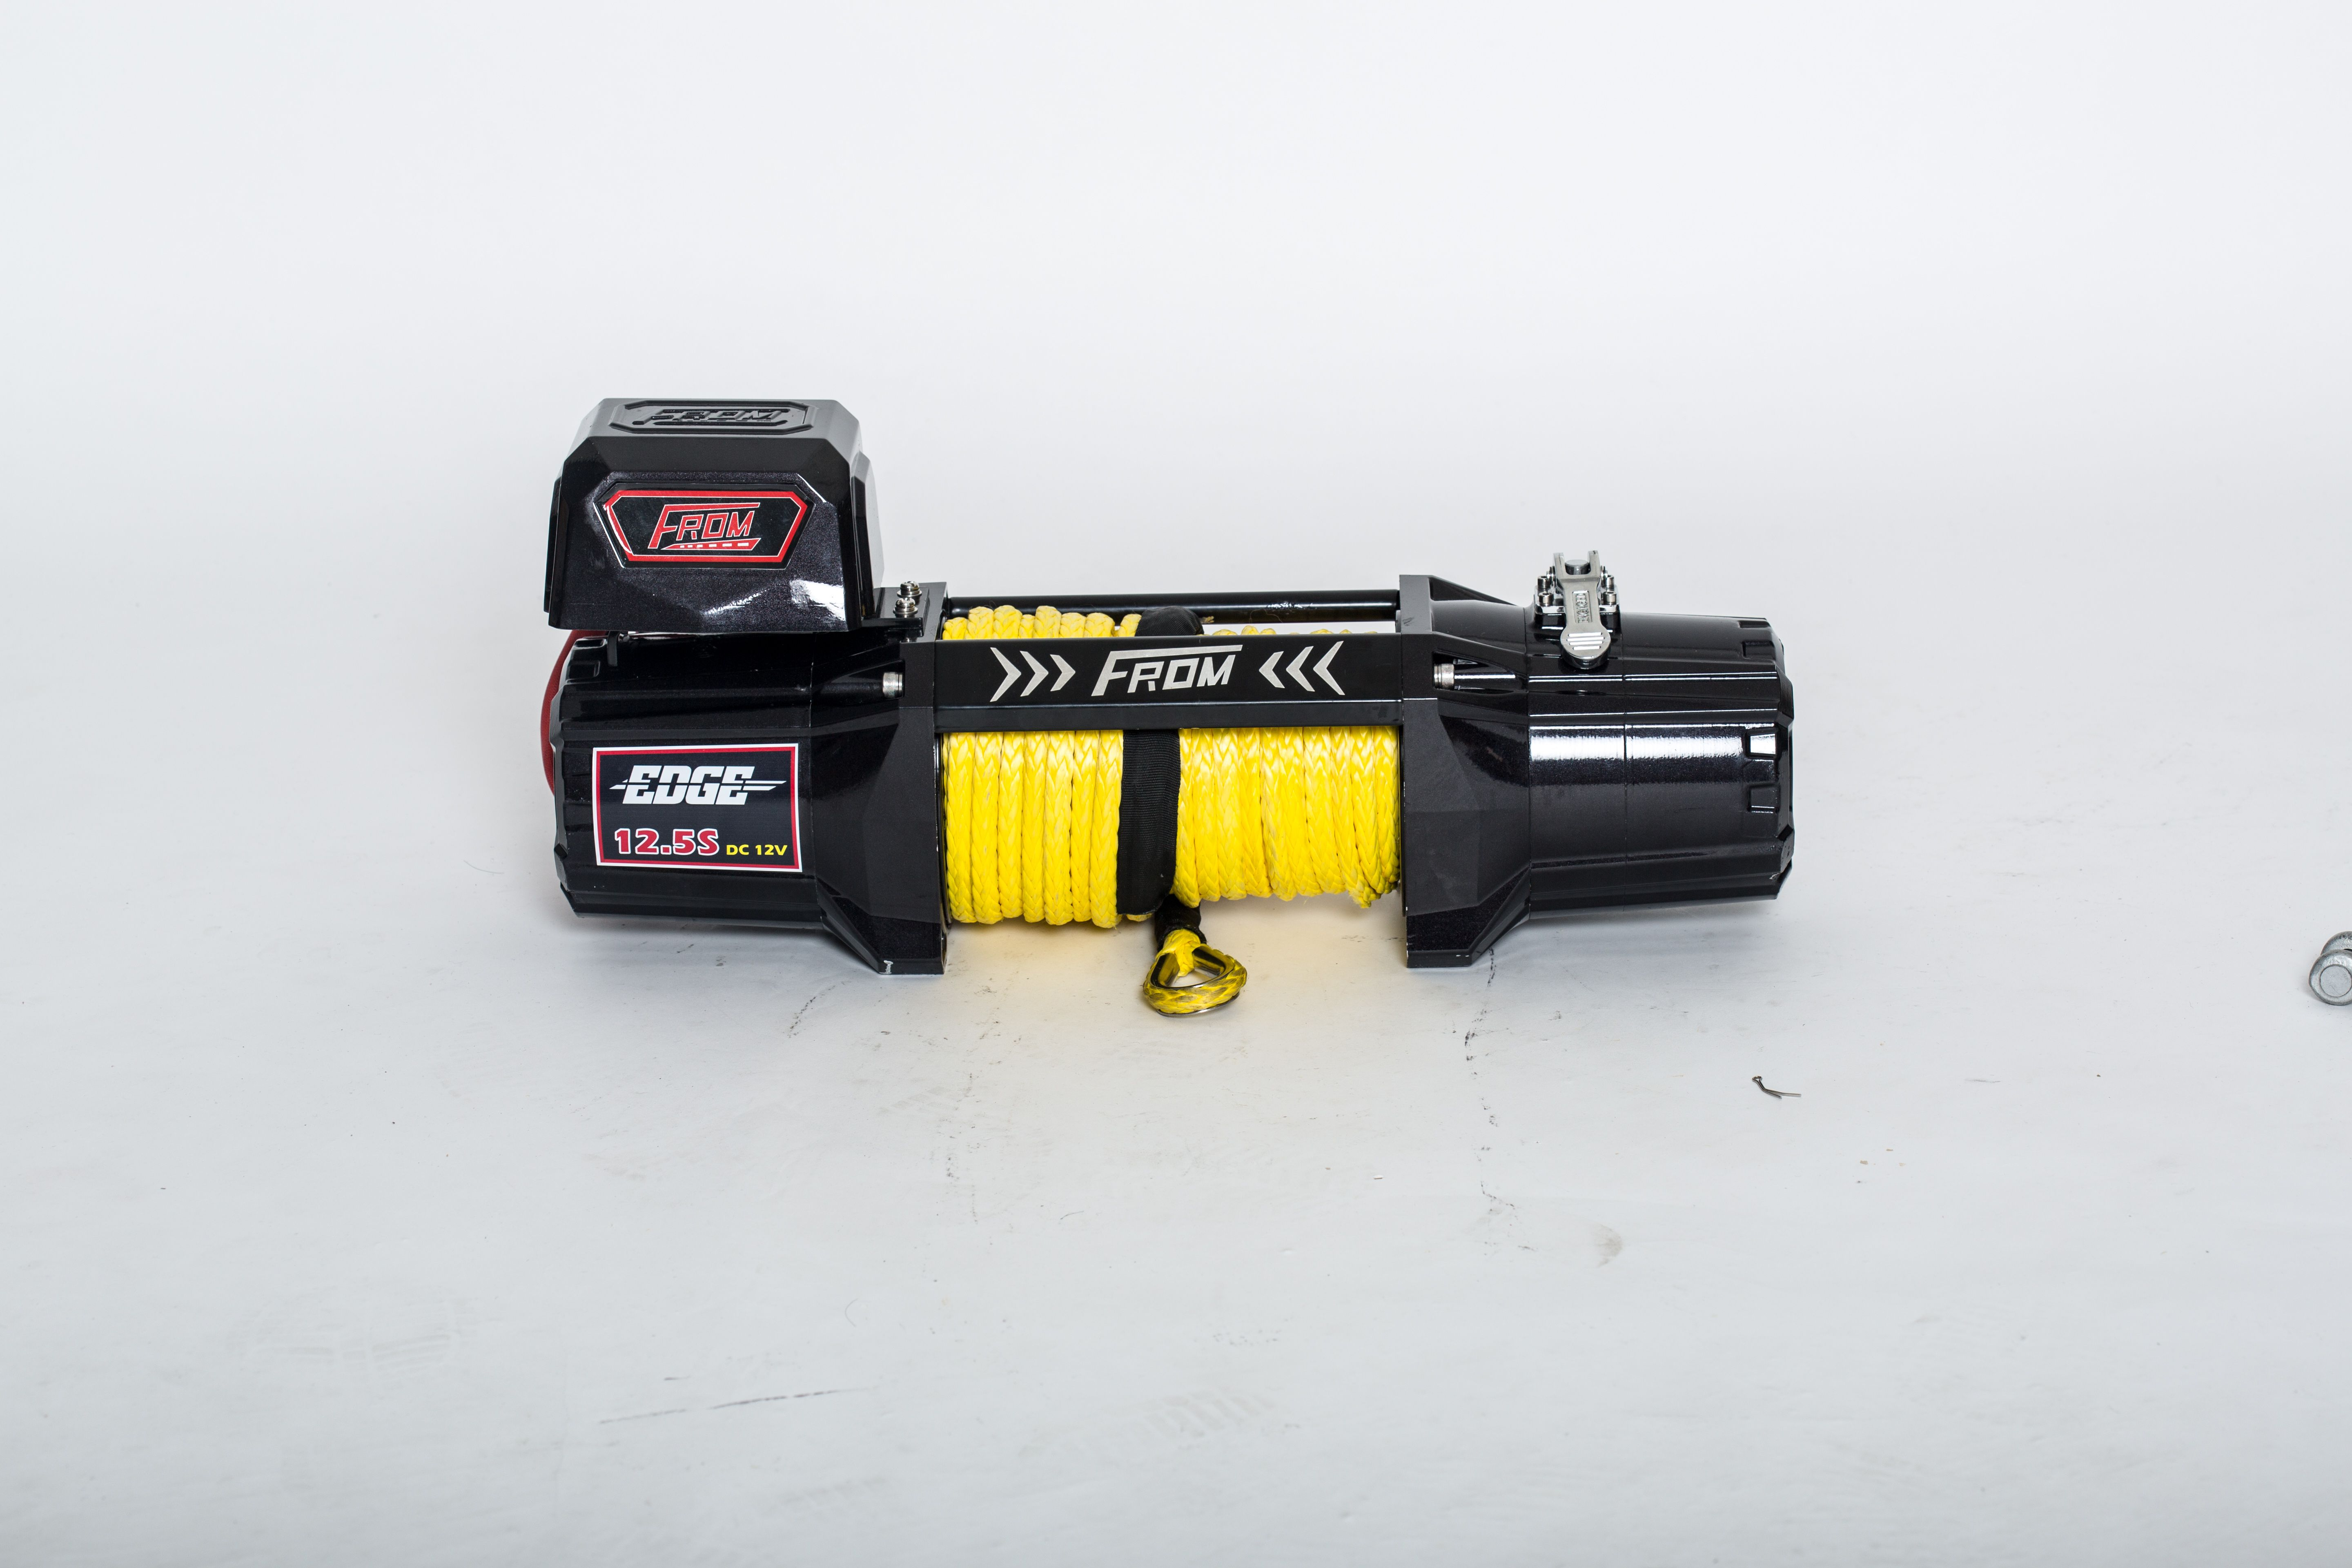 the full range of fromwinch s heavy duty electric winch is 9600 lb electric winches comes out high speed motor synthetic rope from heavy duty electric winches delivery the best performance for your off road